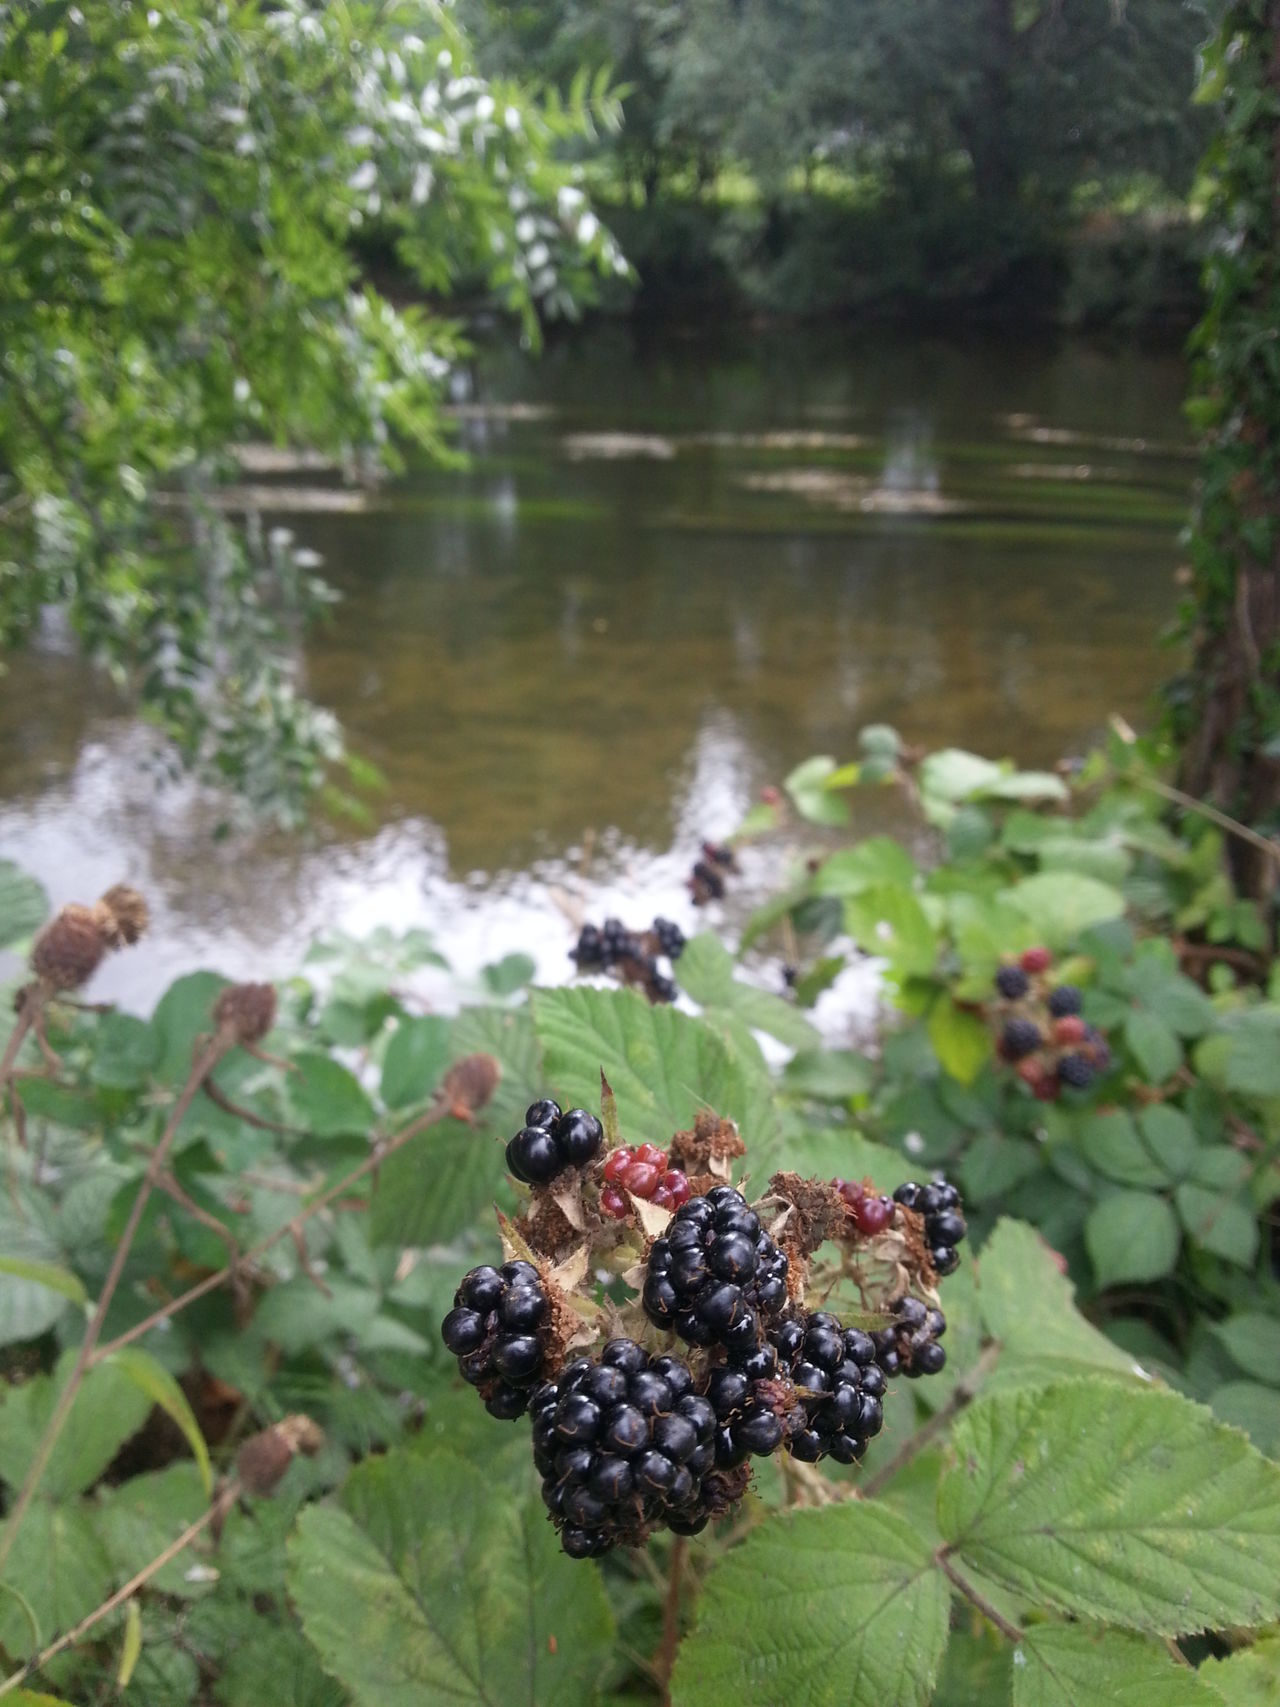 Blackberries by river Hafren in late summer Adapted To The City Beauty In Nature Berries Blackberries Blackberry Close-up Day Focus On Foreground Freshness Growth Hafren Leaf Nature Newtown Powys No People Outdoors Park Park - Man Made Space River River Severn Riverside Tree Wales Water Wild Food